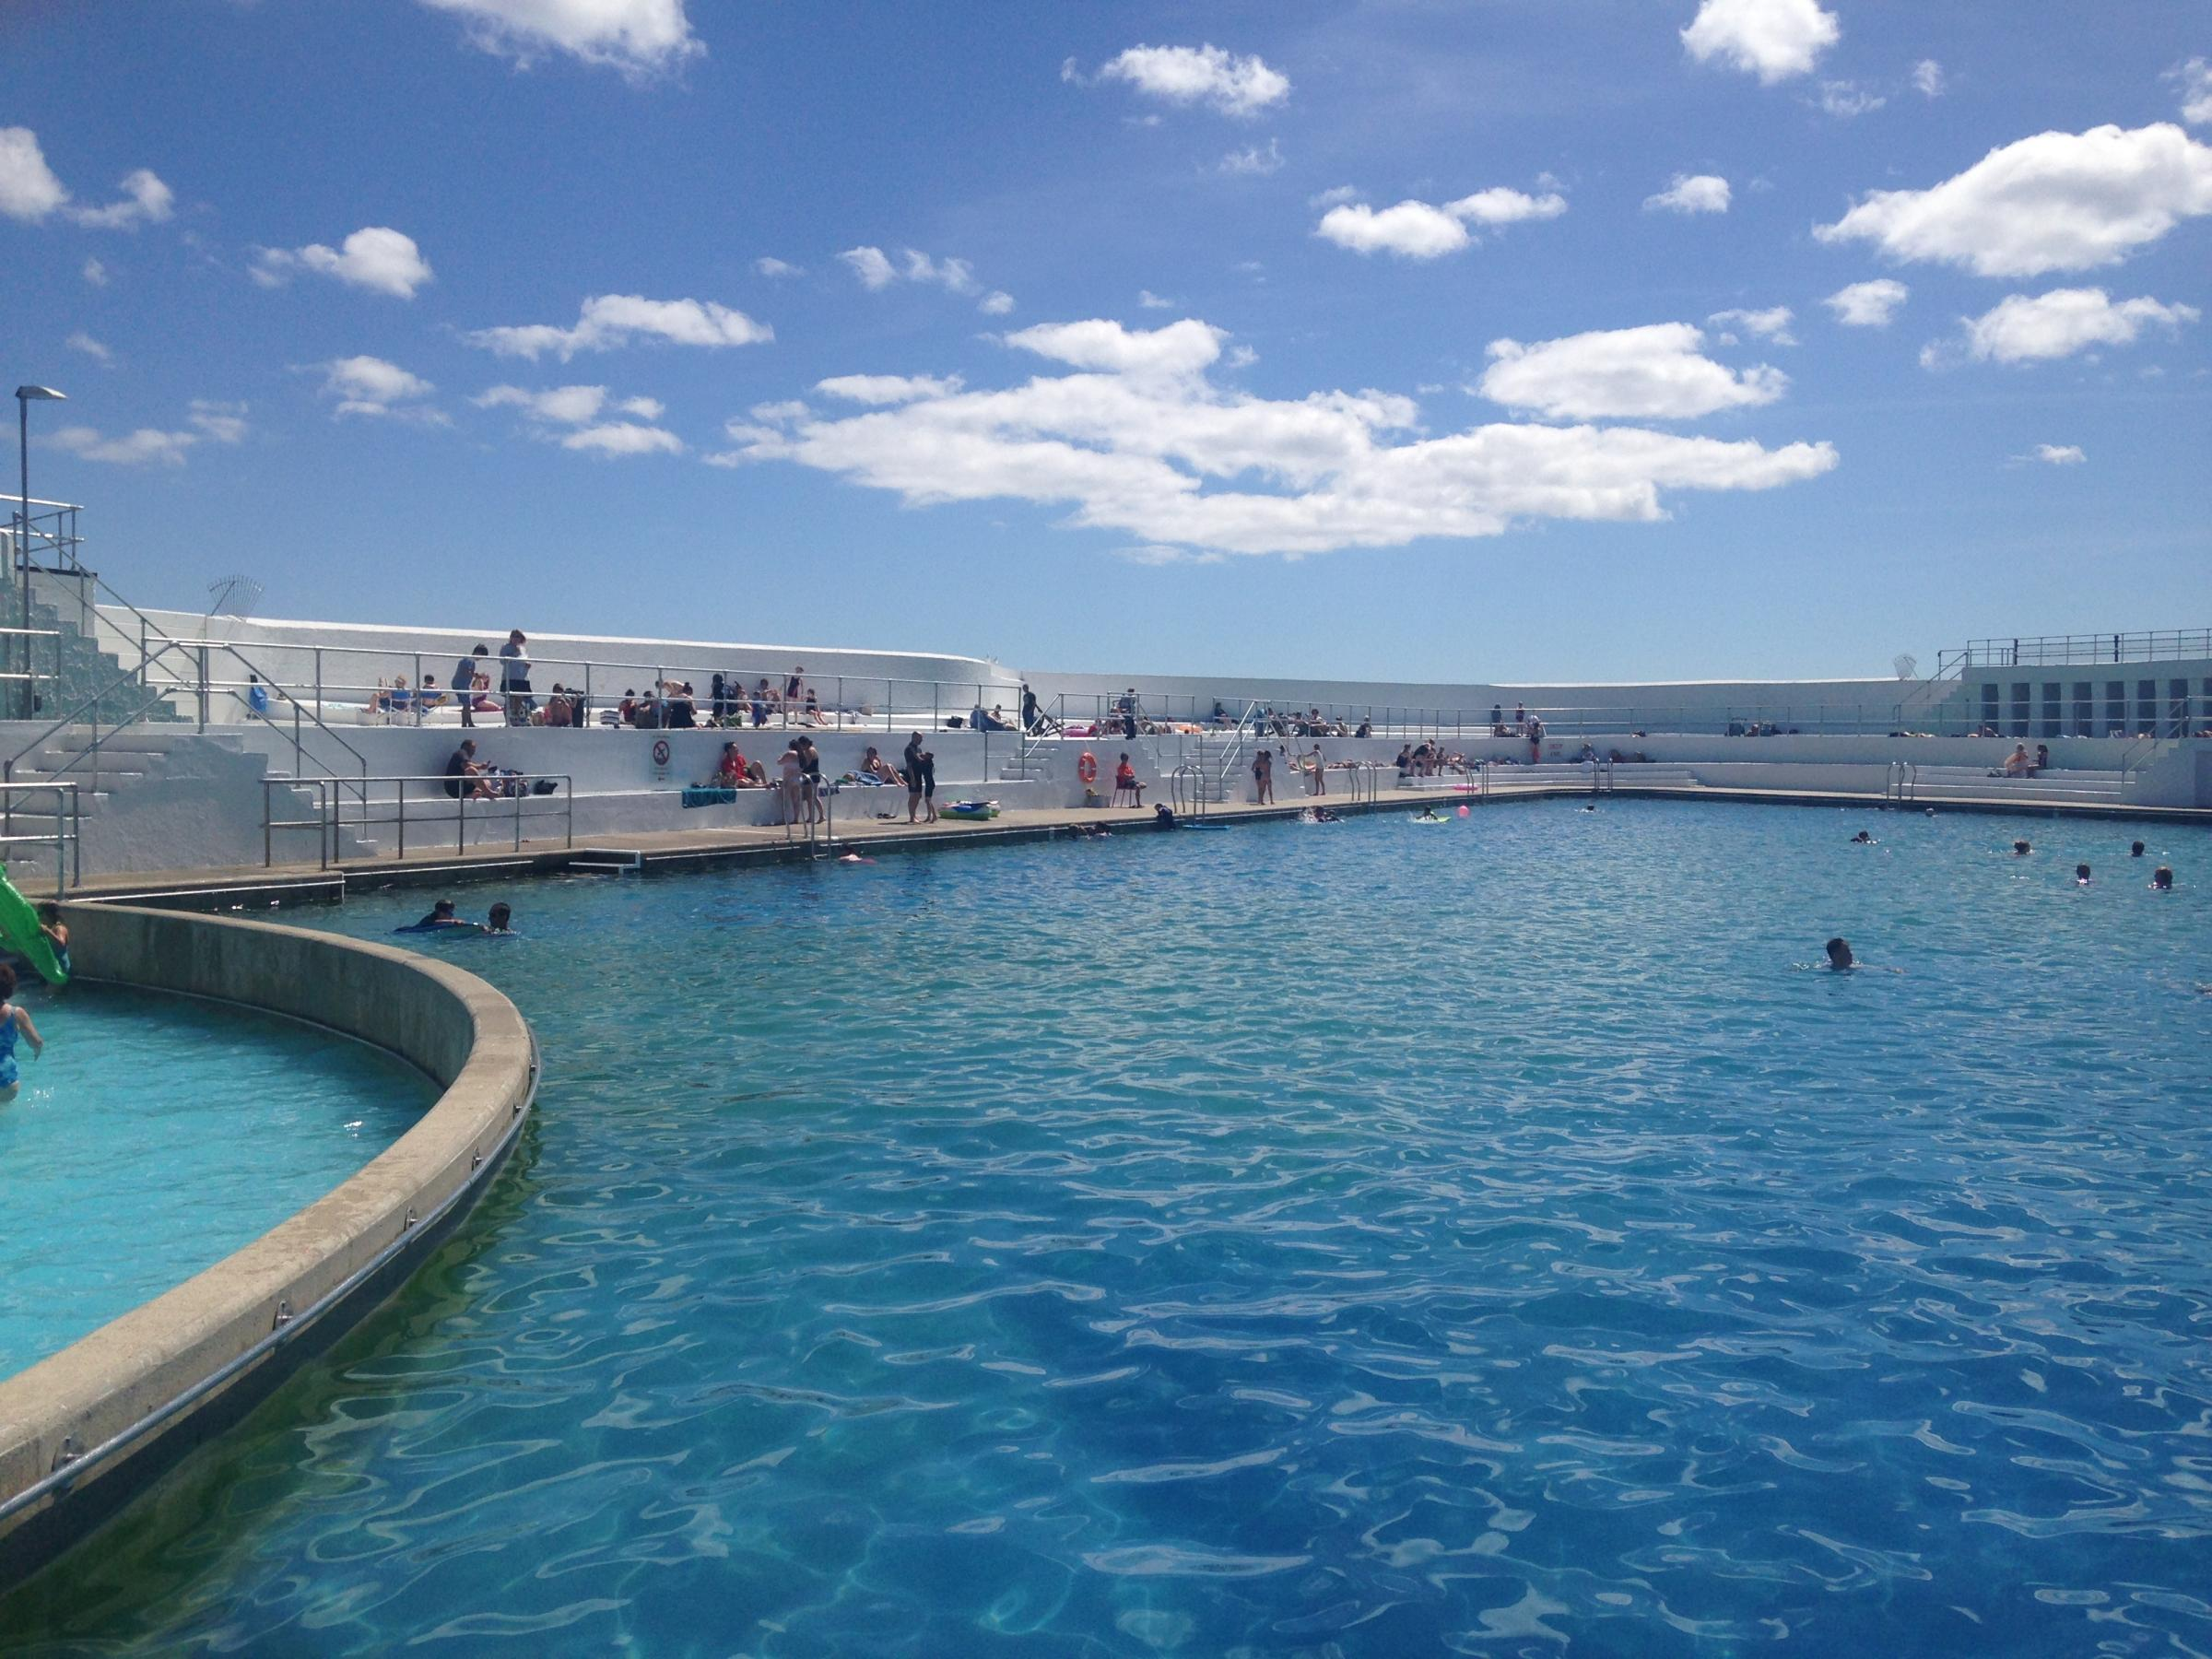 Jubilee Pool set to reopen on Saturday - with one day of free swimming